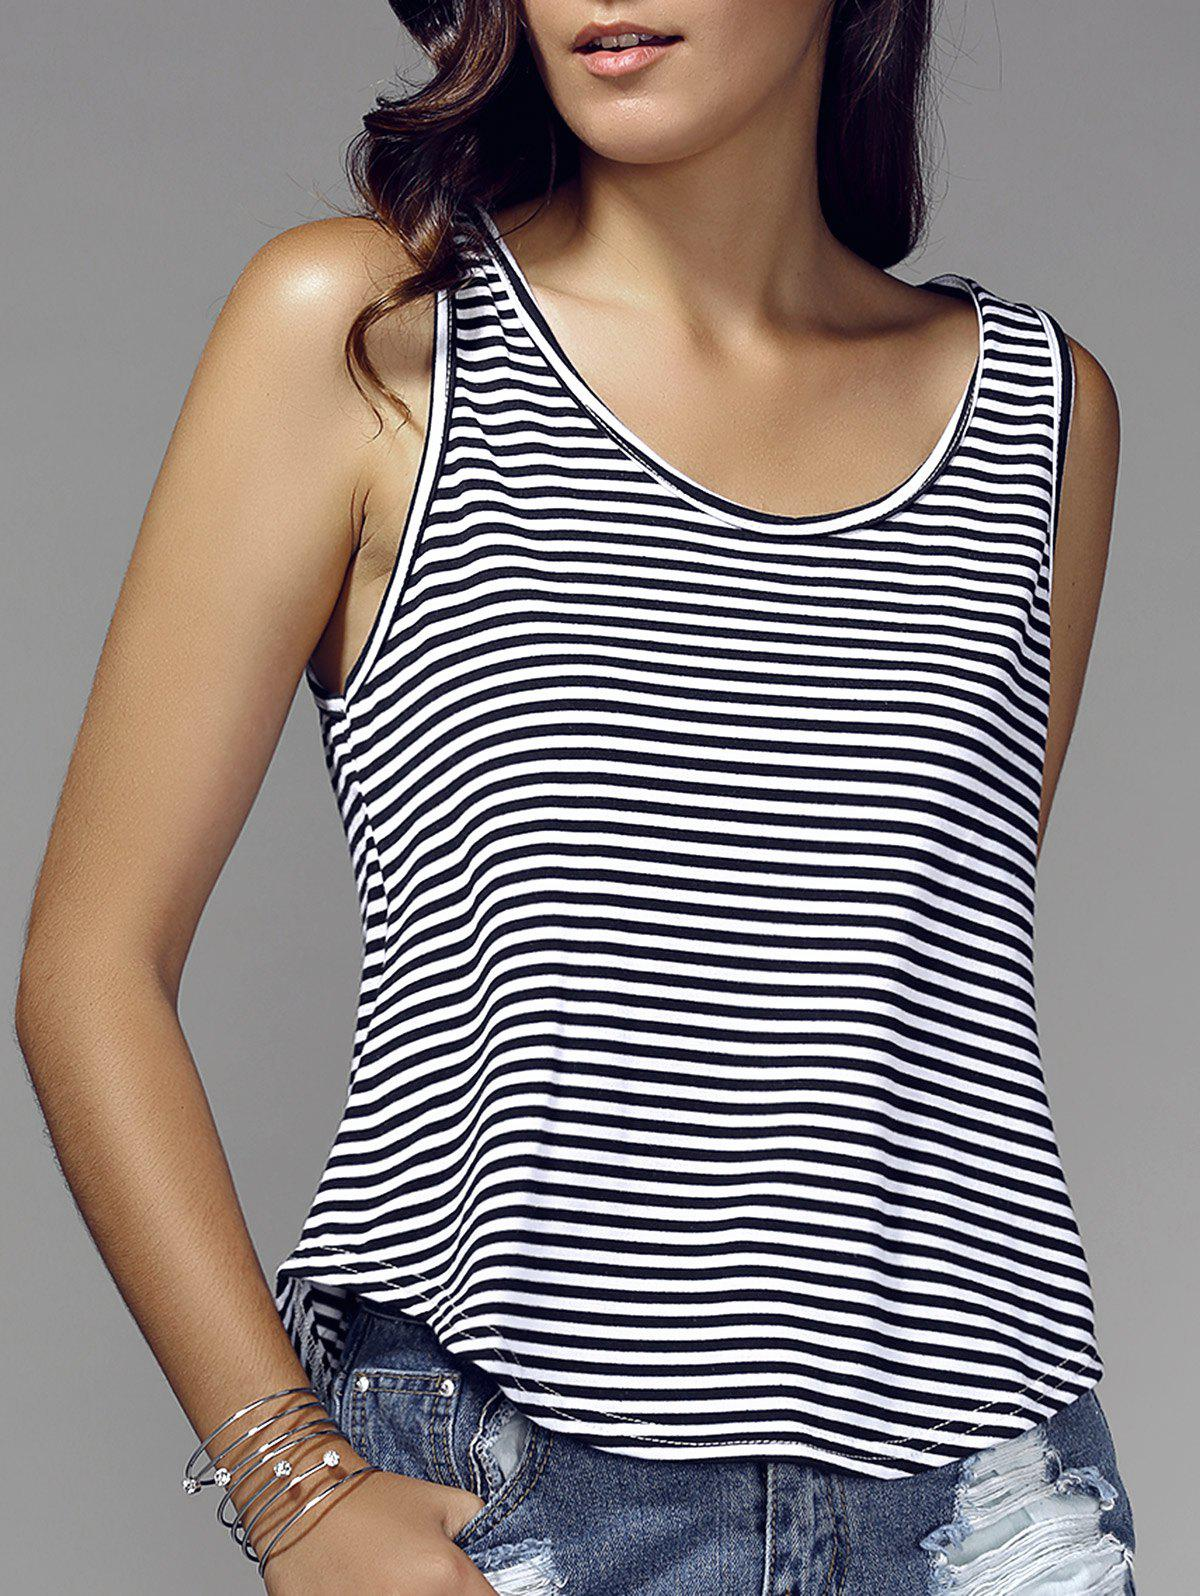 Stylish Scoop Neck Striped Loose-Fitted Tank Top For Women